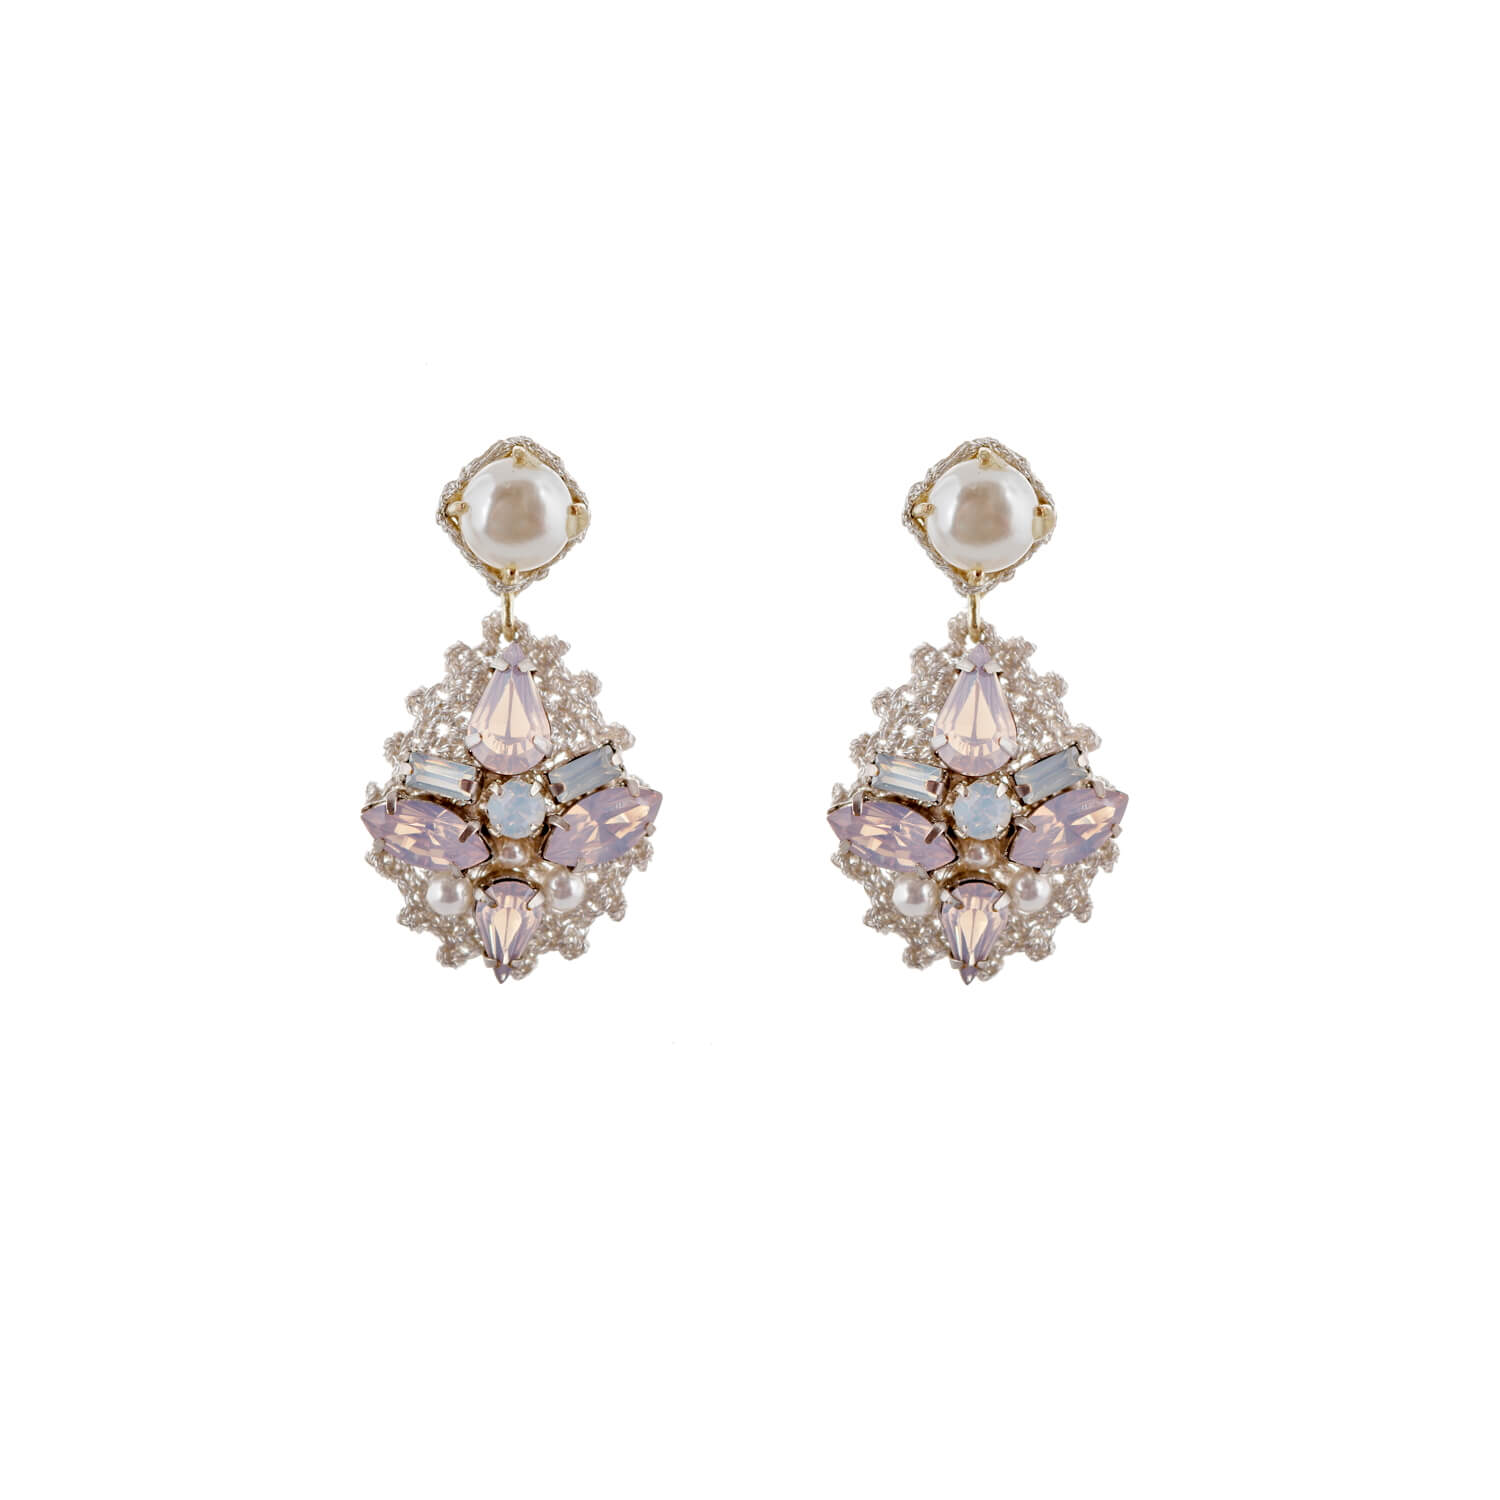 Disco Single Drop Scallop Earrings - Blush Opal Pearl